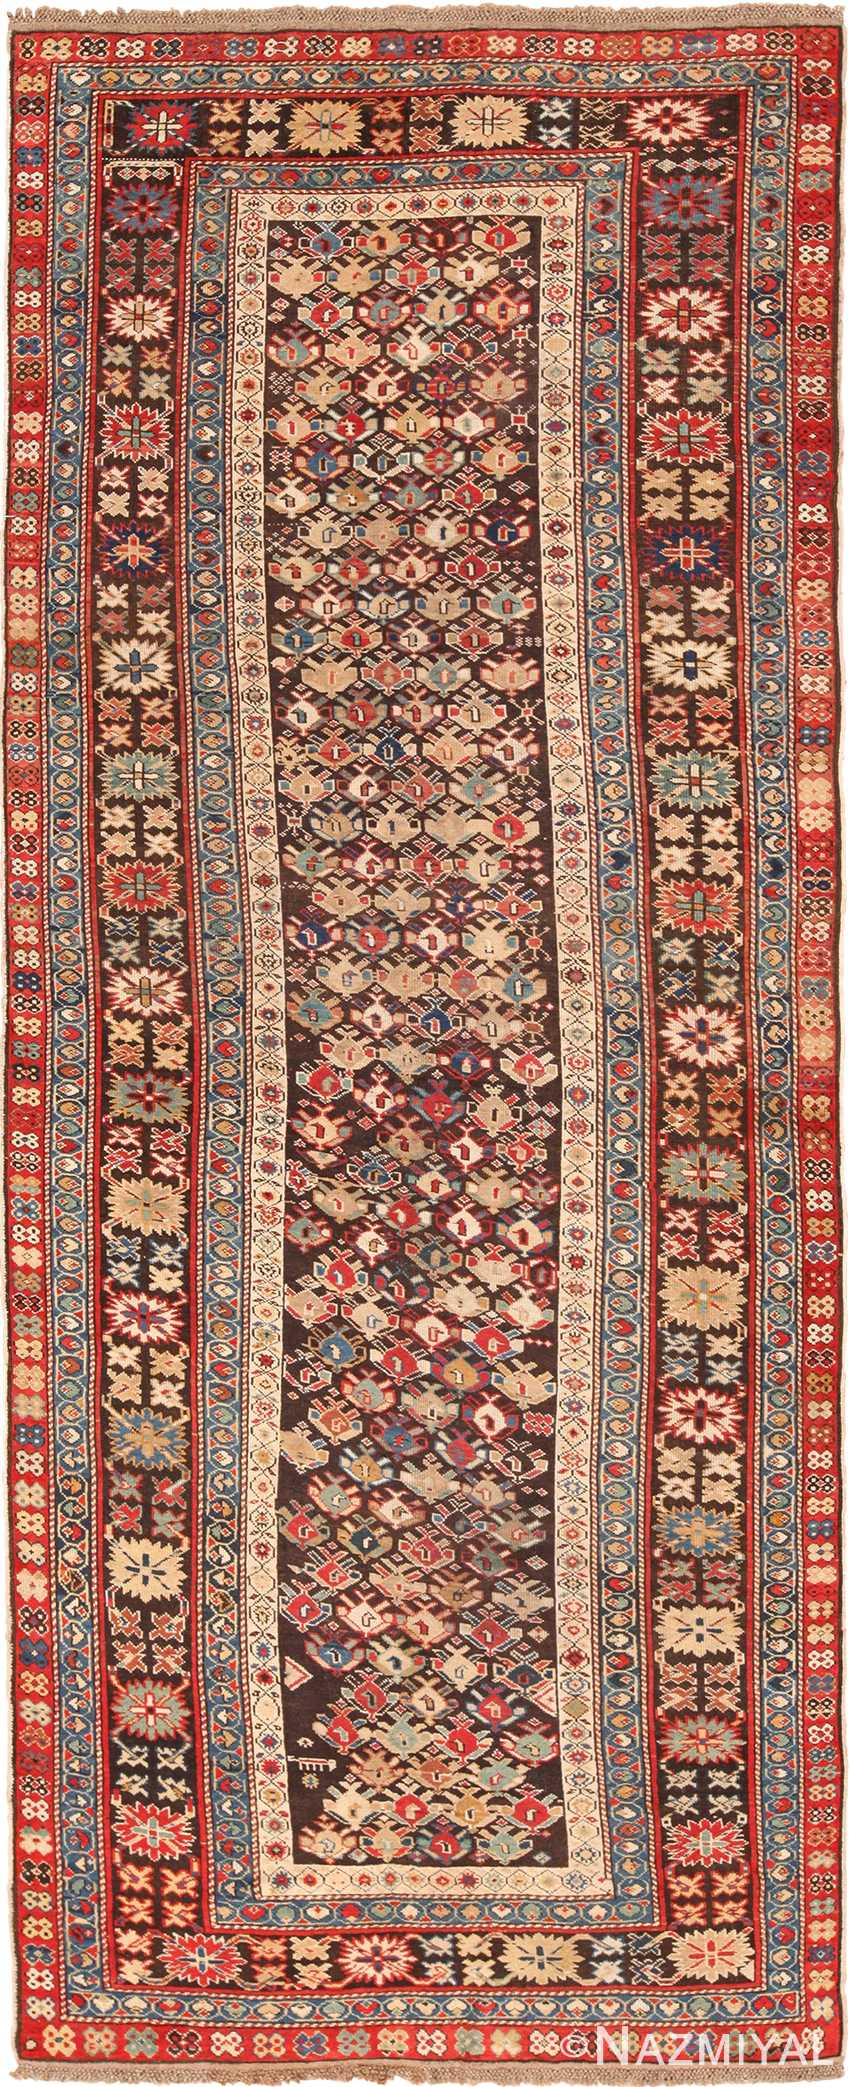 Chocolate Brown Antique Tribal Caucasian Kuba Rug 49643 by Nazmiyal